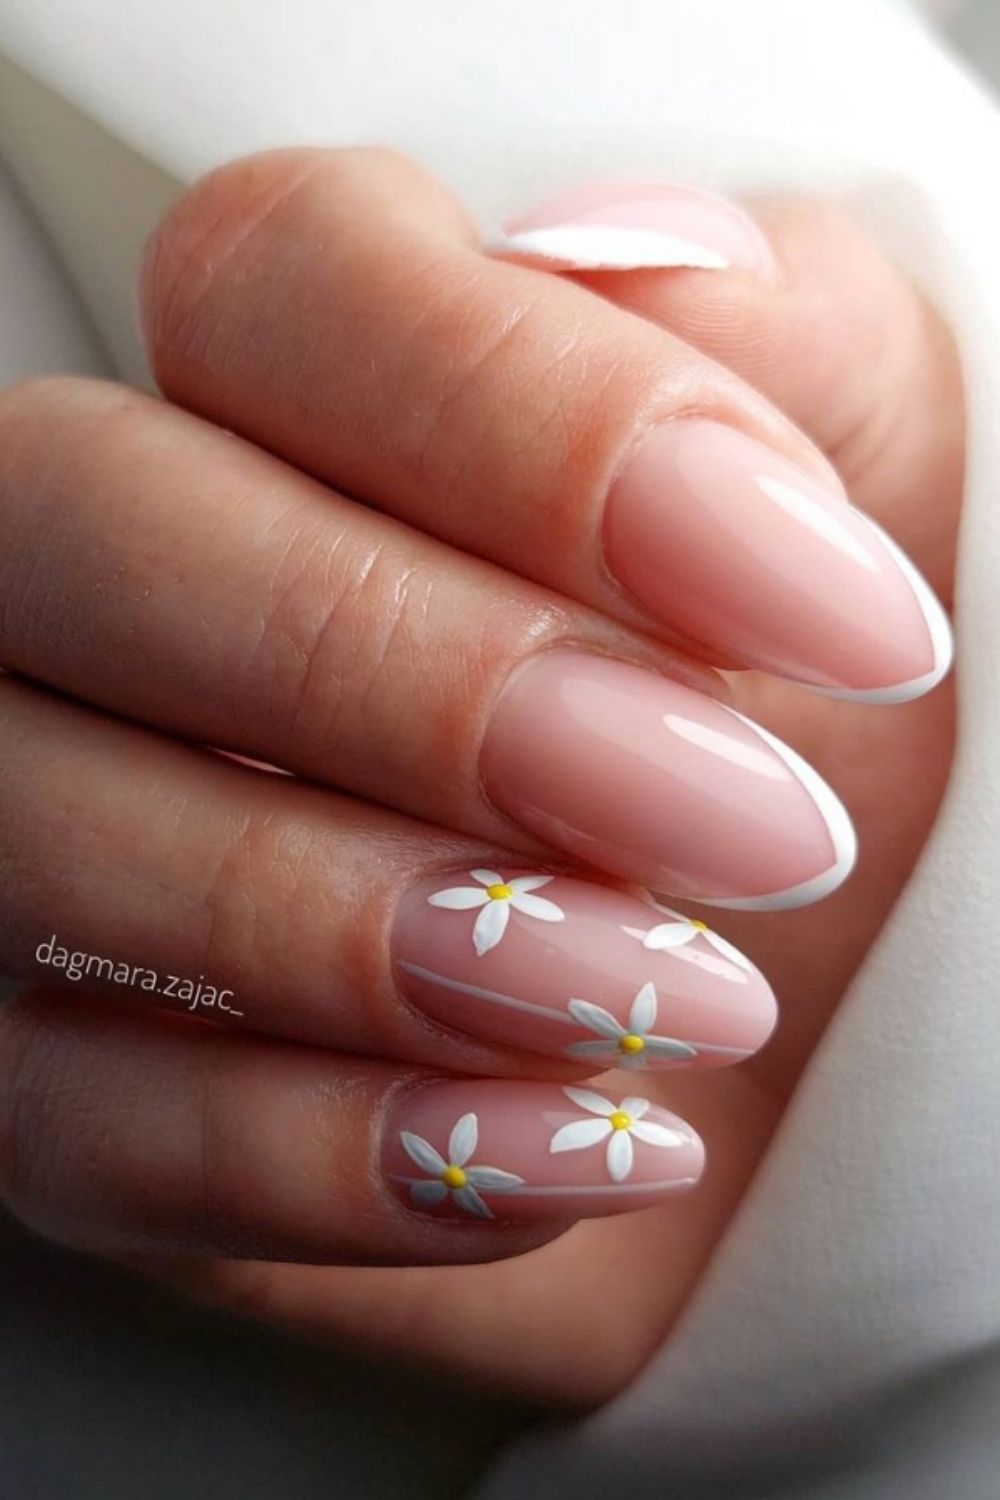 French tip almond nails for you to Consider for Your Next Nail Look